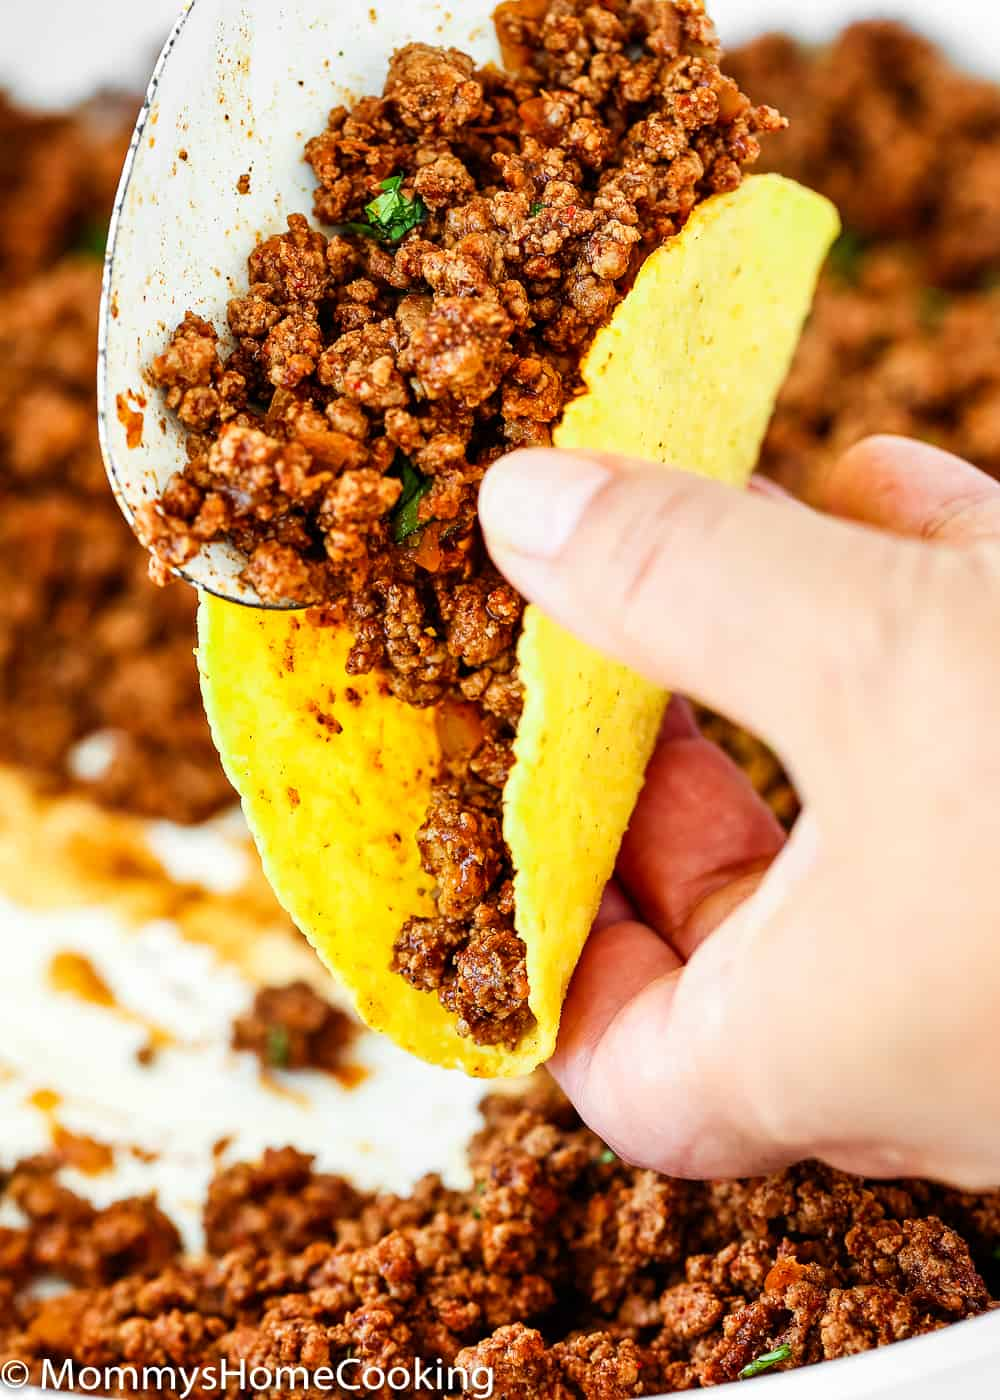 Serving taco ground beef into a taco shell